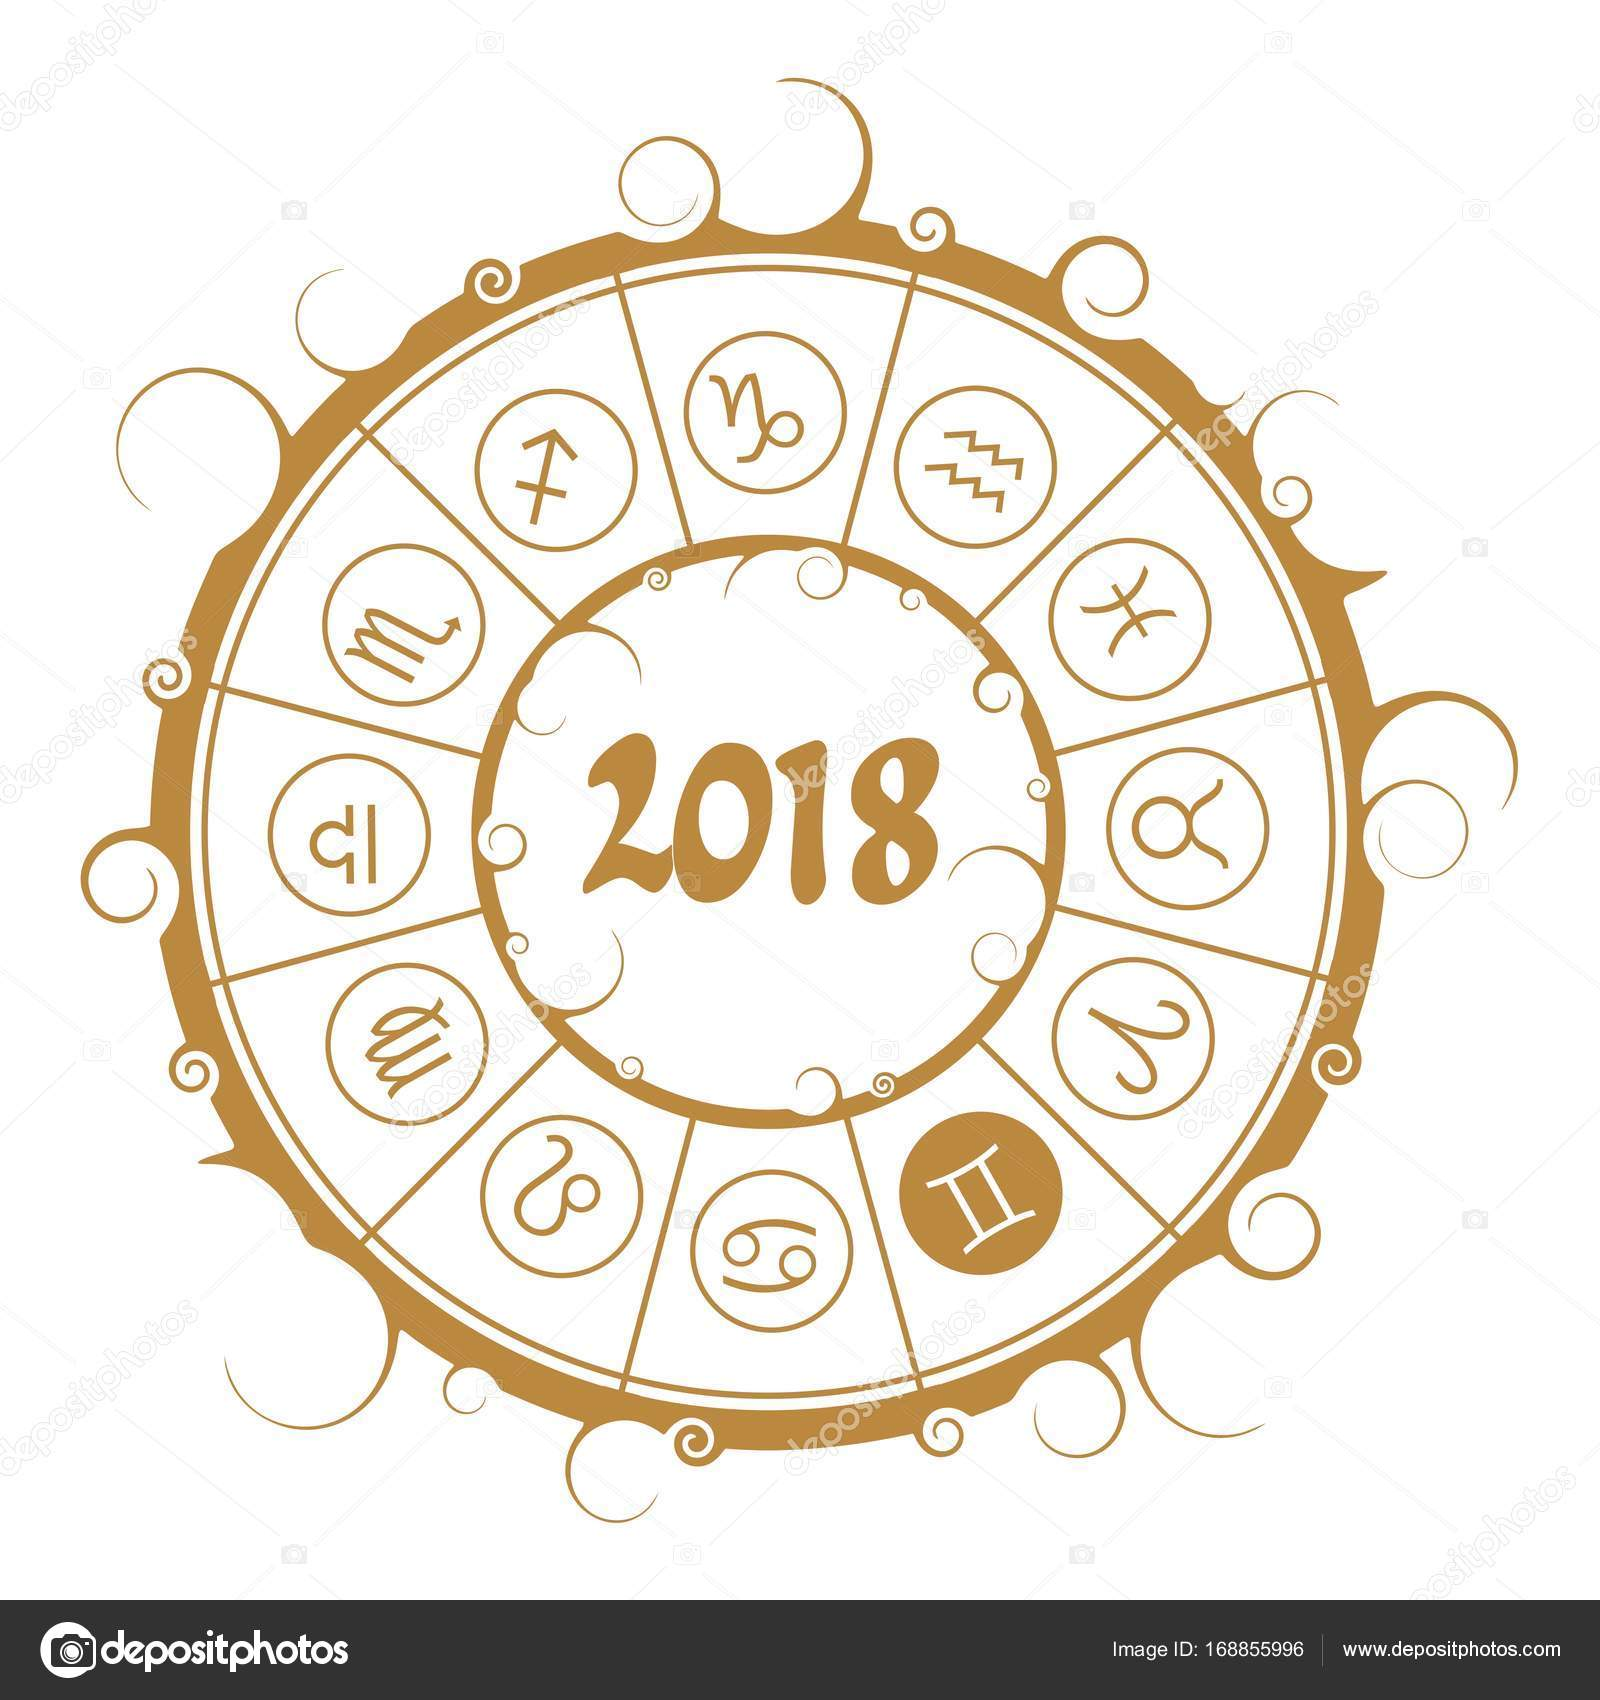 Astrology symbols in circle gemini sign stock vector jegasra astrological symbols in the circle gemini sign new year and christmas celebration card template zodiac circle with 2018 new year number buycottarizona